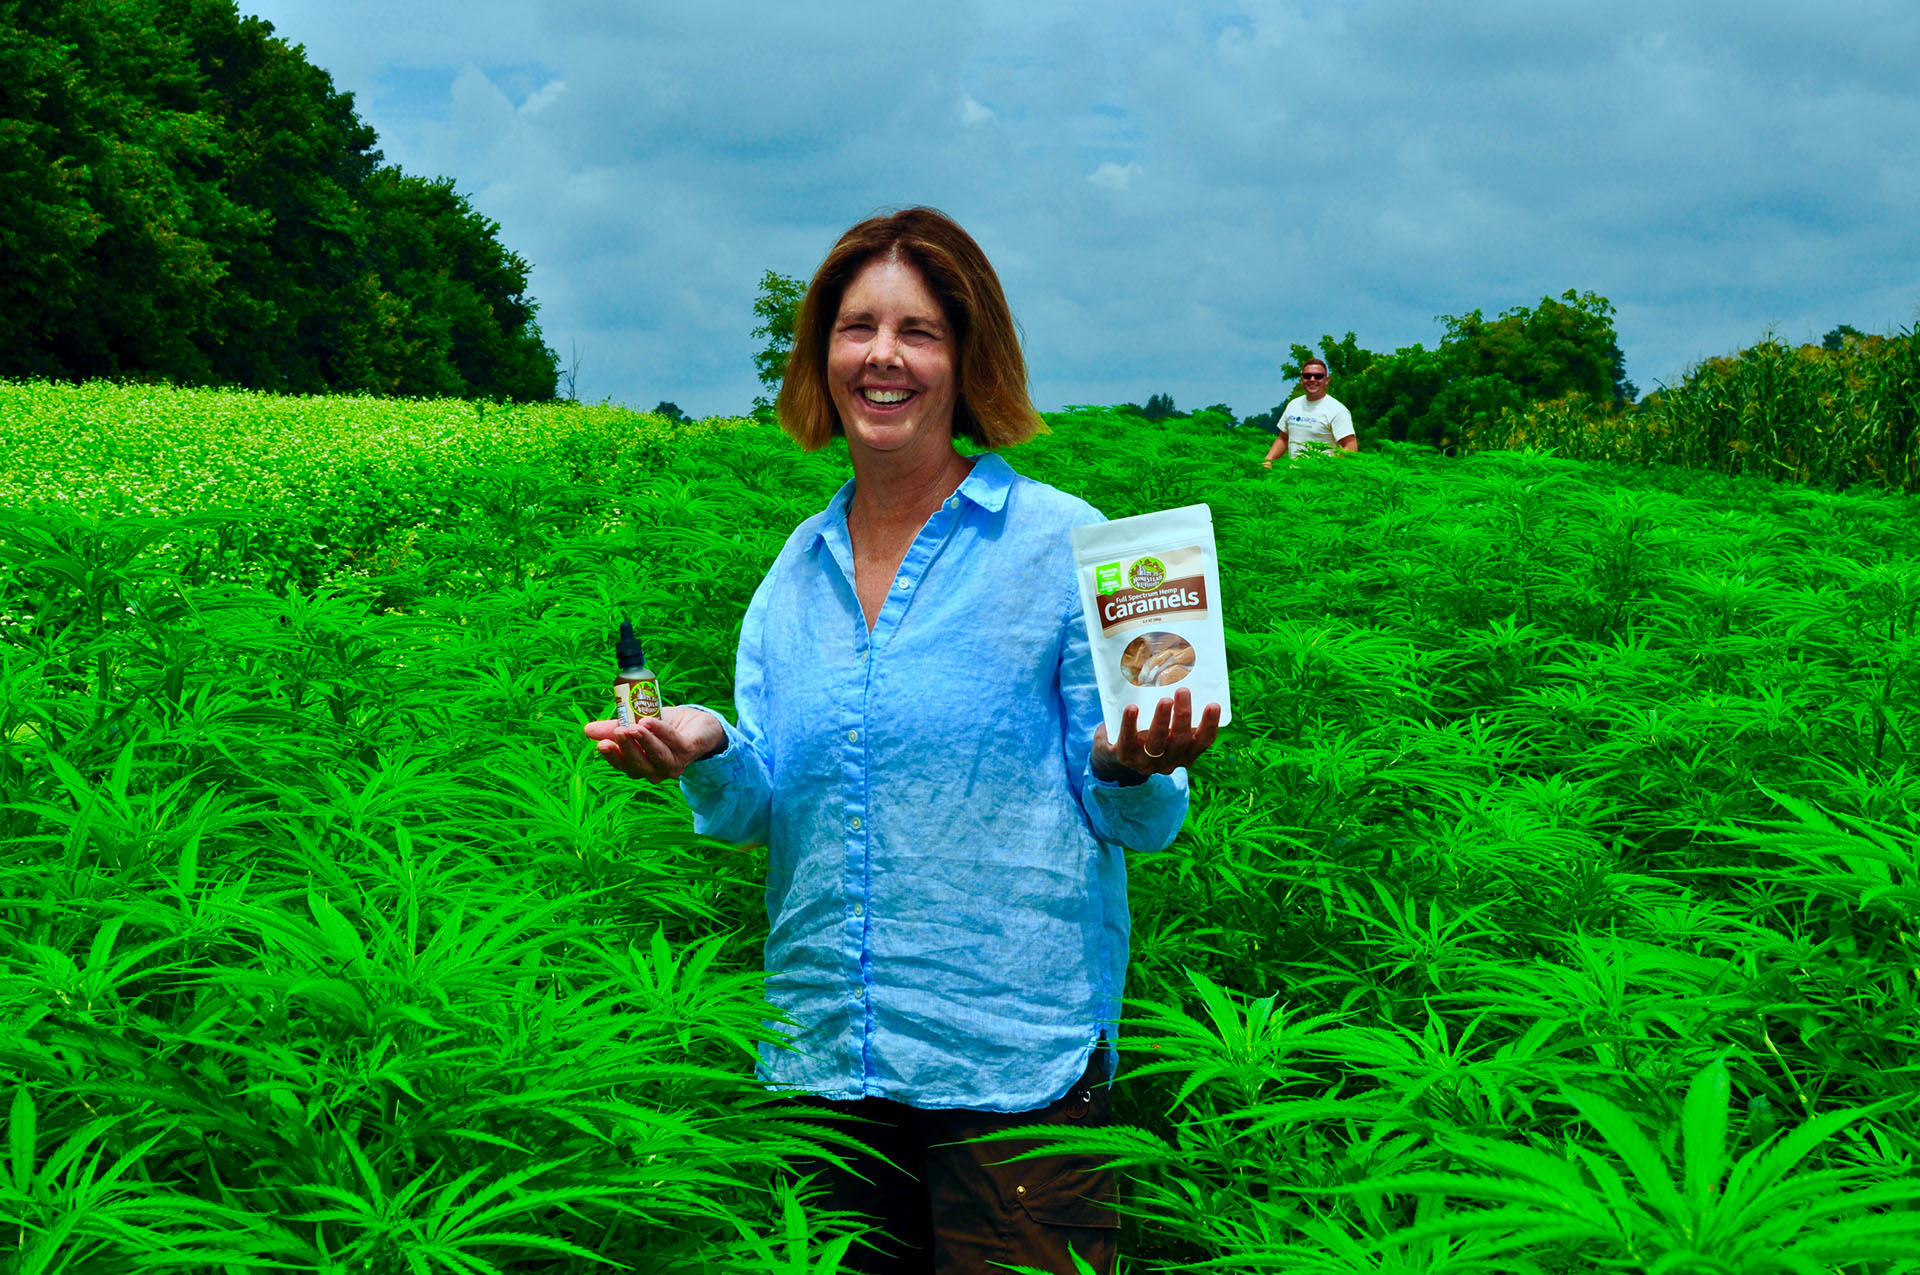 Laura Freeman standing in organic hemp field holding Homestead Alternatives Full Spectrum CBD Oil and Caramels.